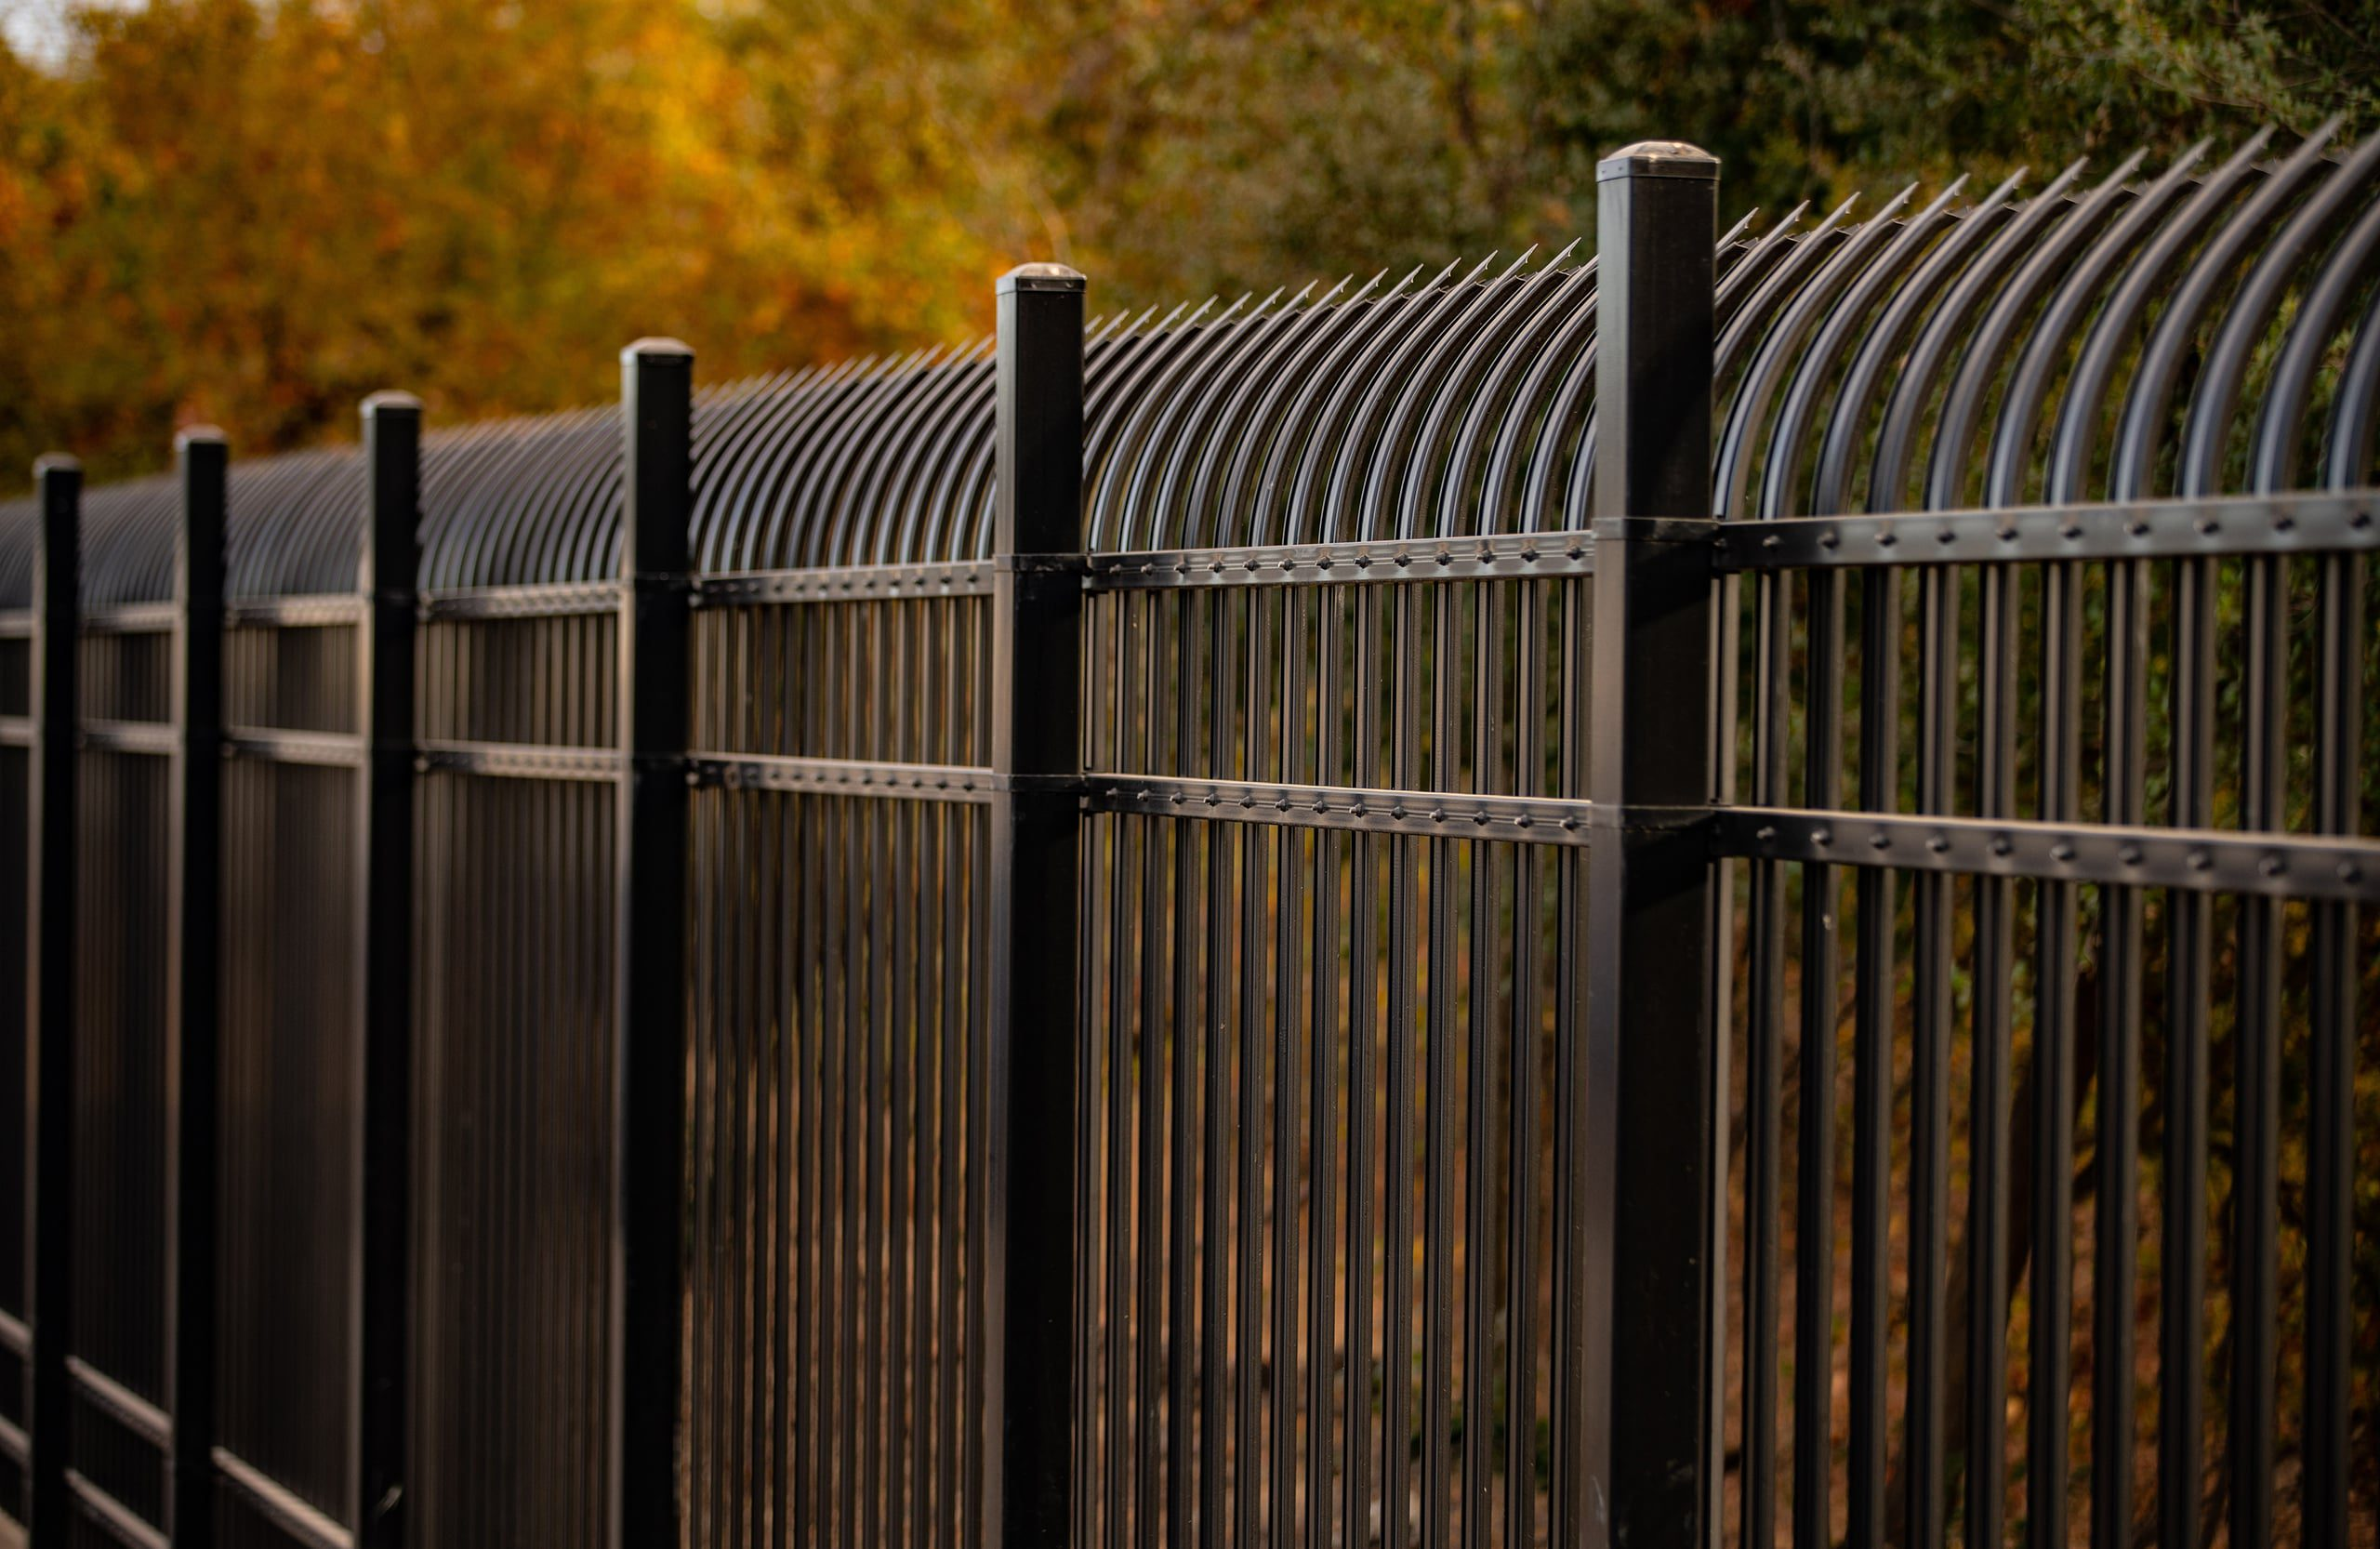 Iron picket fencing built by Crusader Fence commercial contractor for PG&E utility